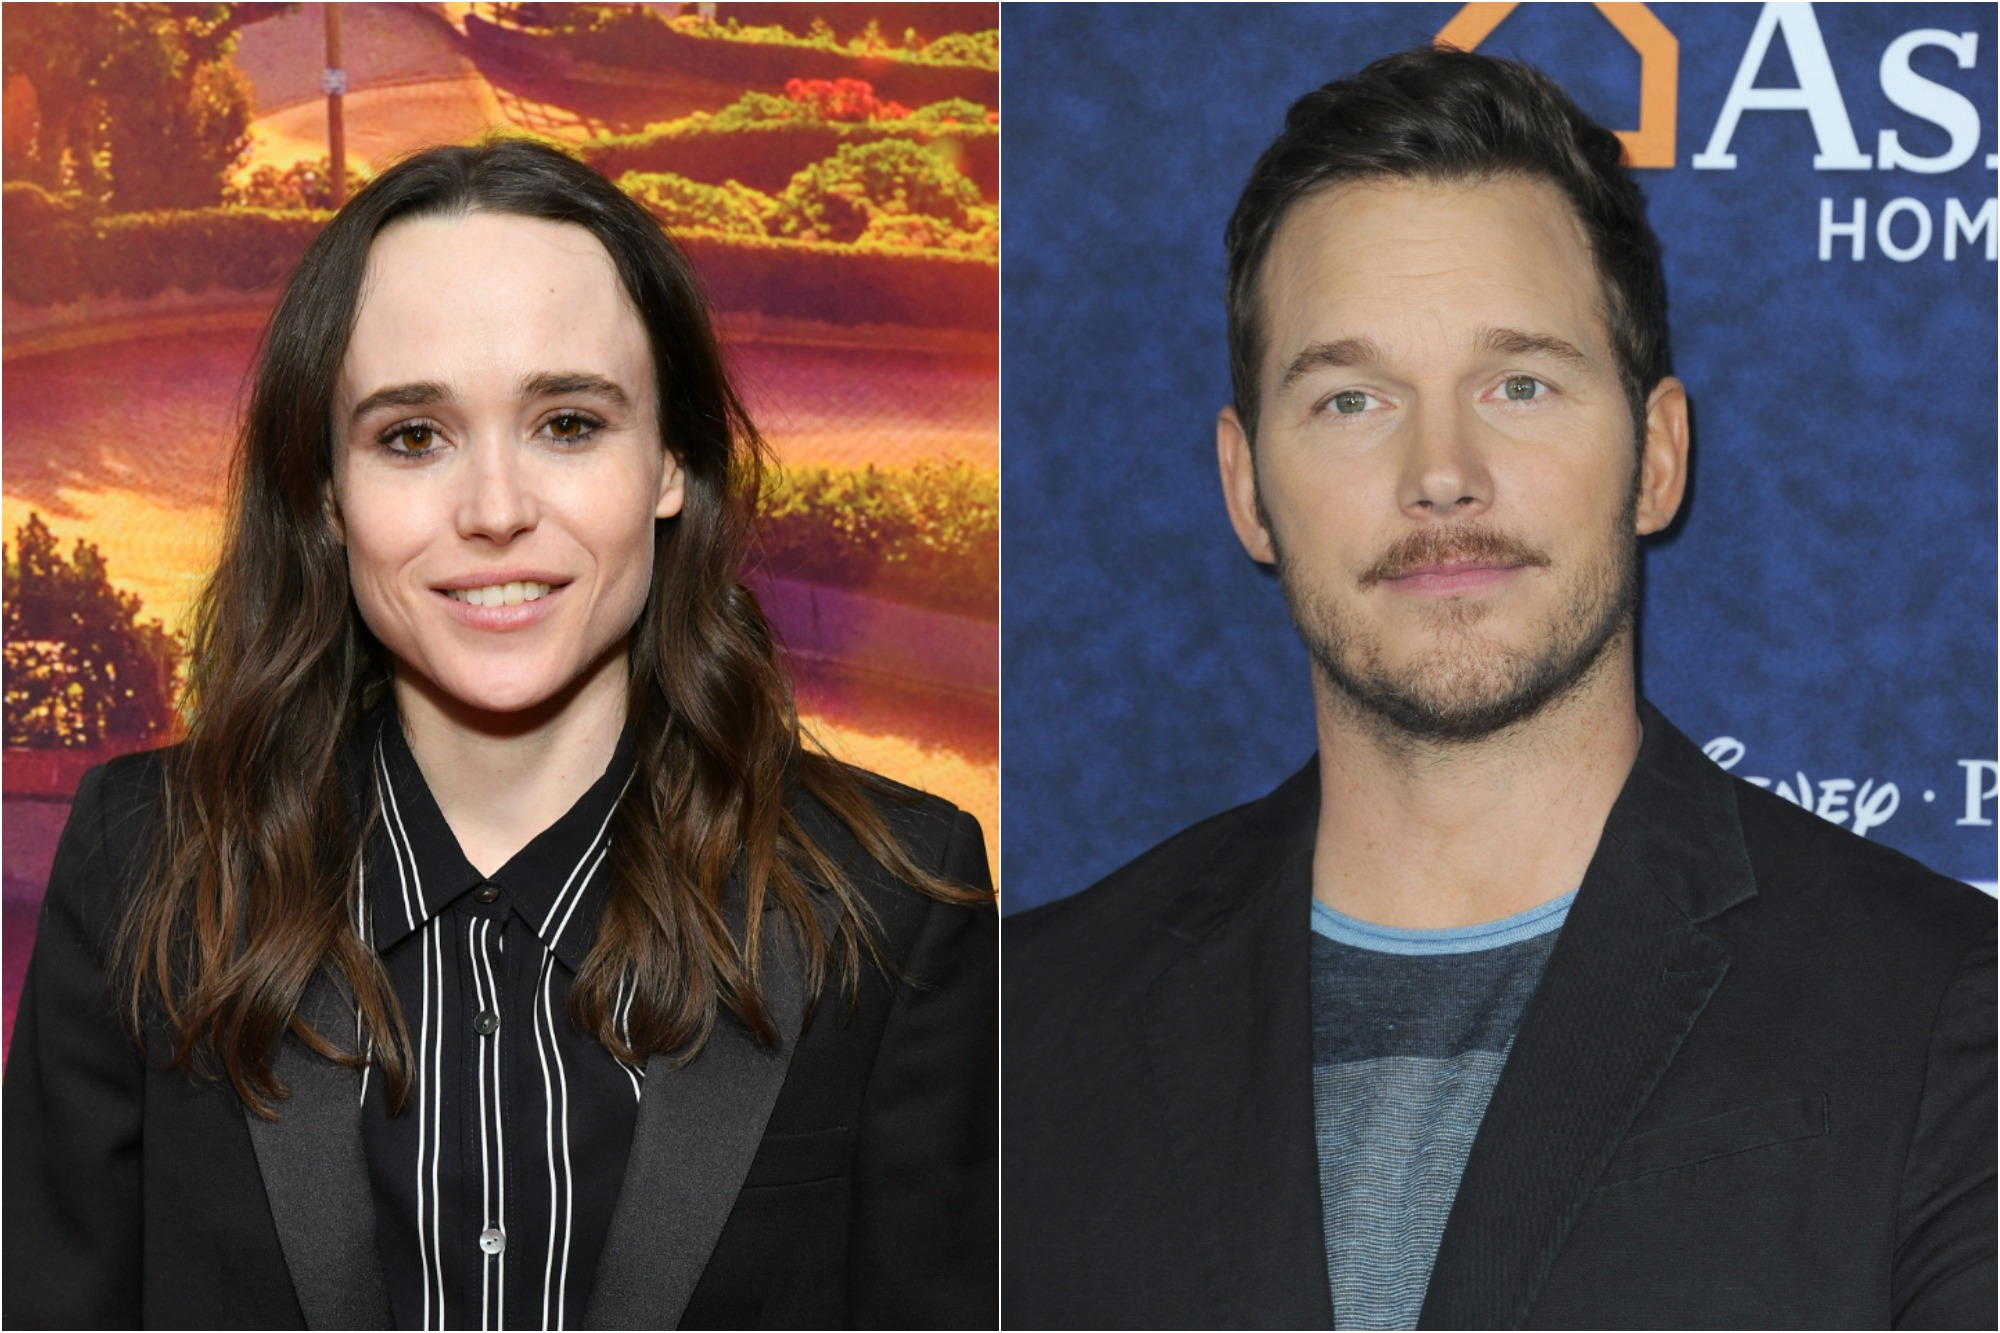 Ellen Page at the 'Tales of the City' New York premiere at The Metrograph on June 03, 2019 / Chris Pratt at the premiere of Disney And Pixar's 'Onward' at the El Capitan Theatre on February 18, 2020